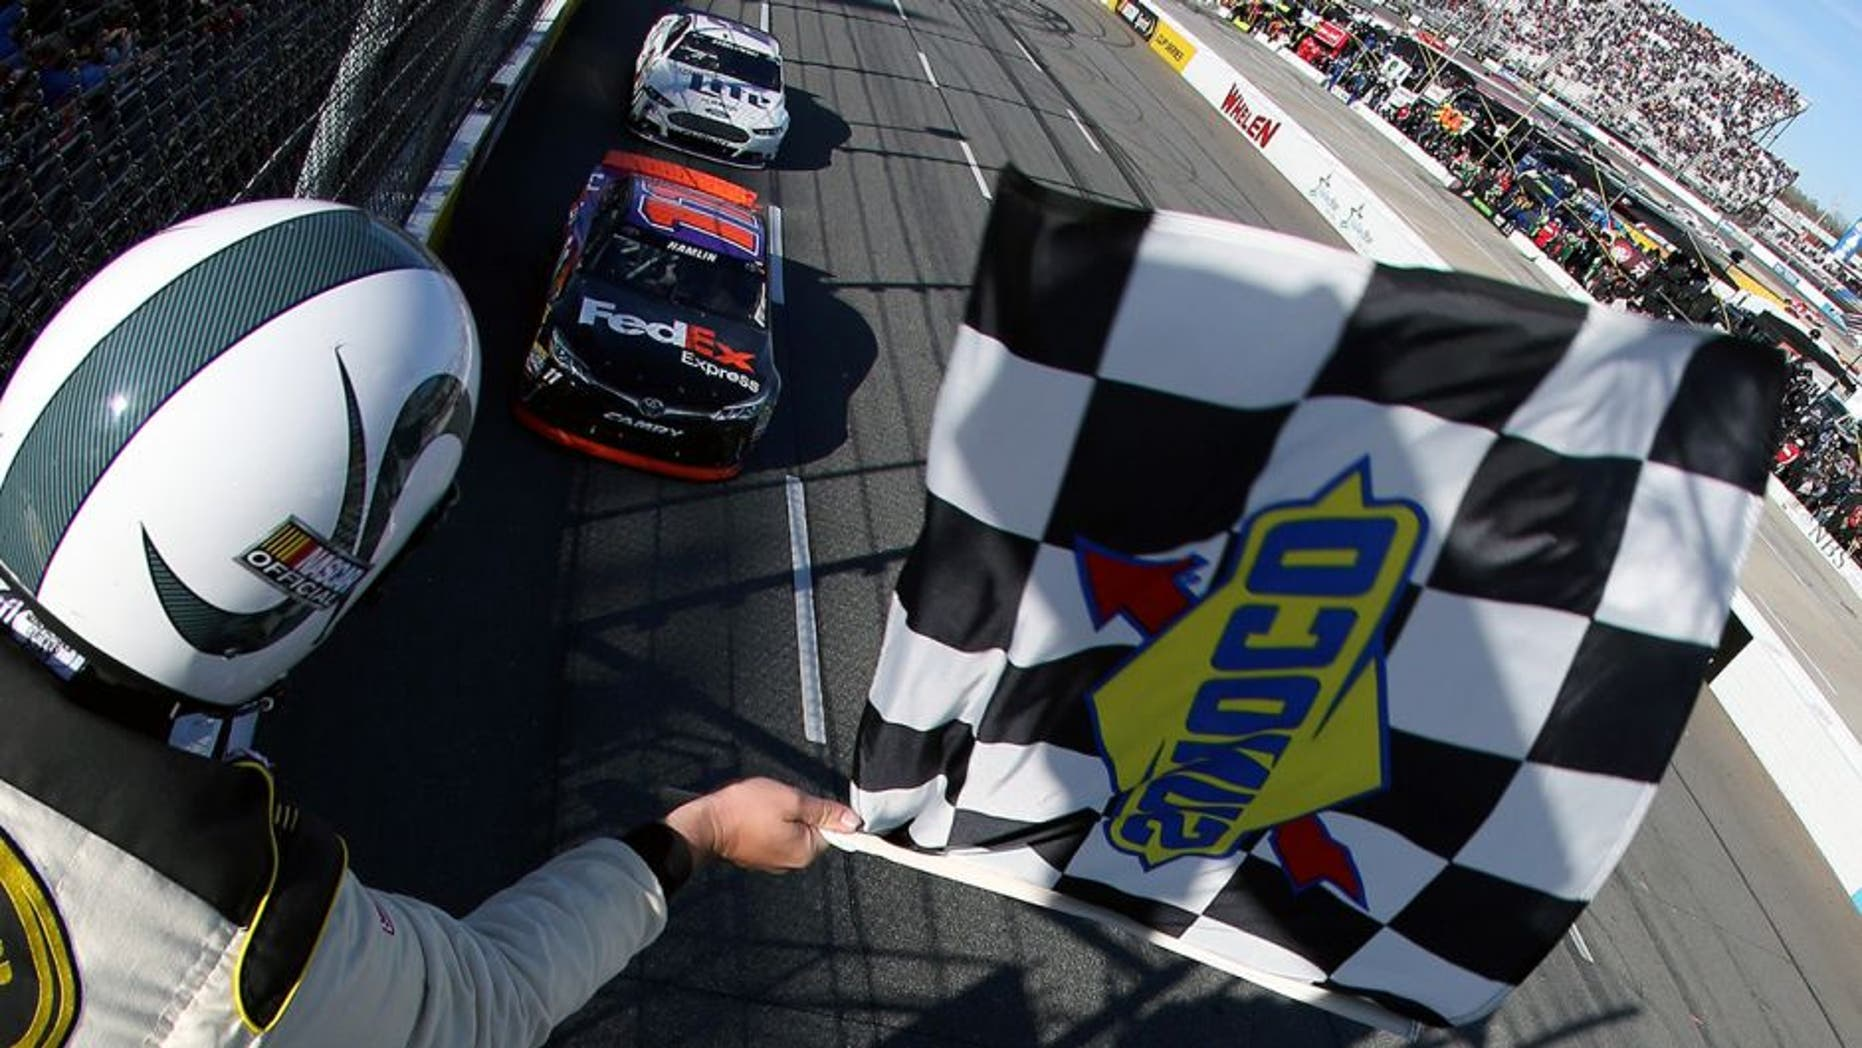 MARTINSVILLE, VA - MARCH 29: Denny Hamlin, driver of the #11 FedEx Express Toyota, takes the checkered flag to win the NASCAR Sprint Cup Series STP 500 at Martinsville Speedway on March 29, 2015 in Martinsville, Virginia. (Photo by Nick Laham/NASCAR via Getty Images)